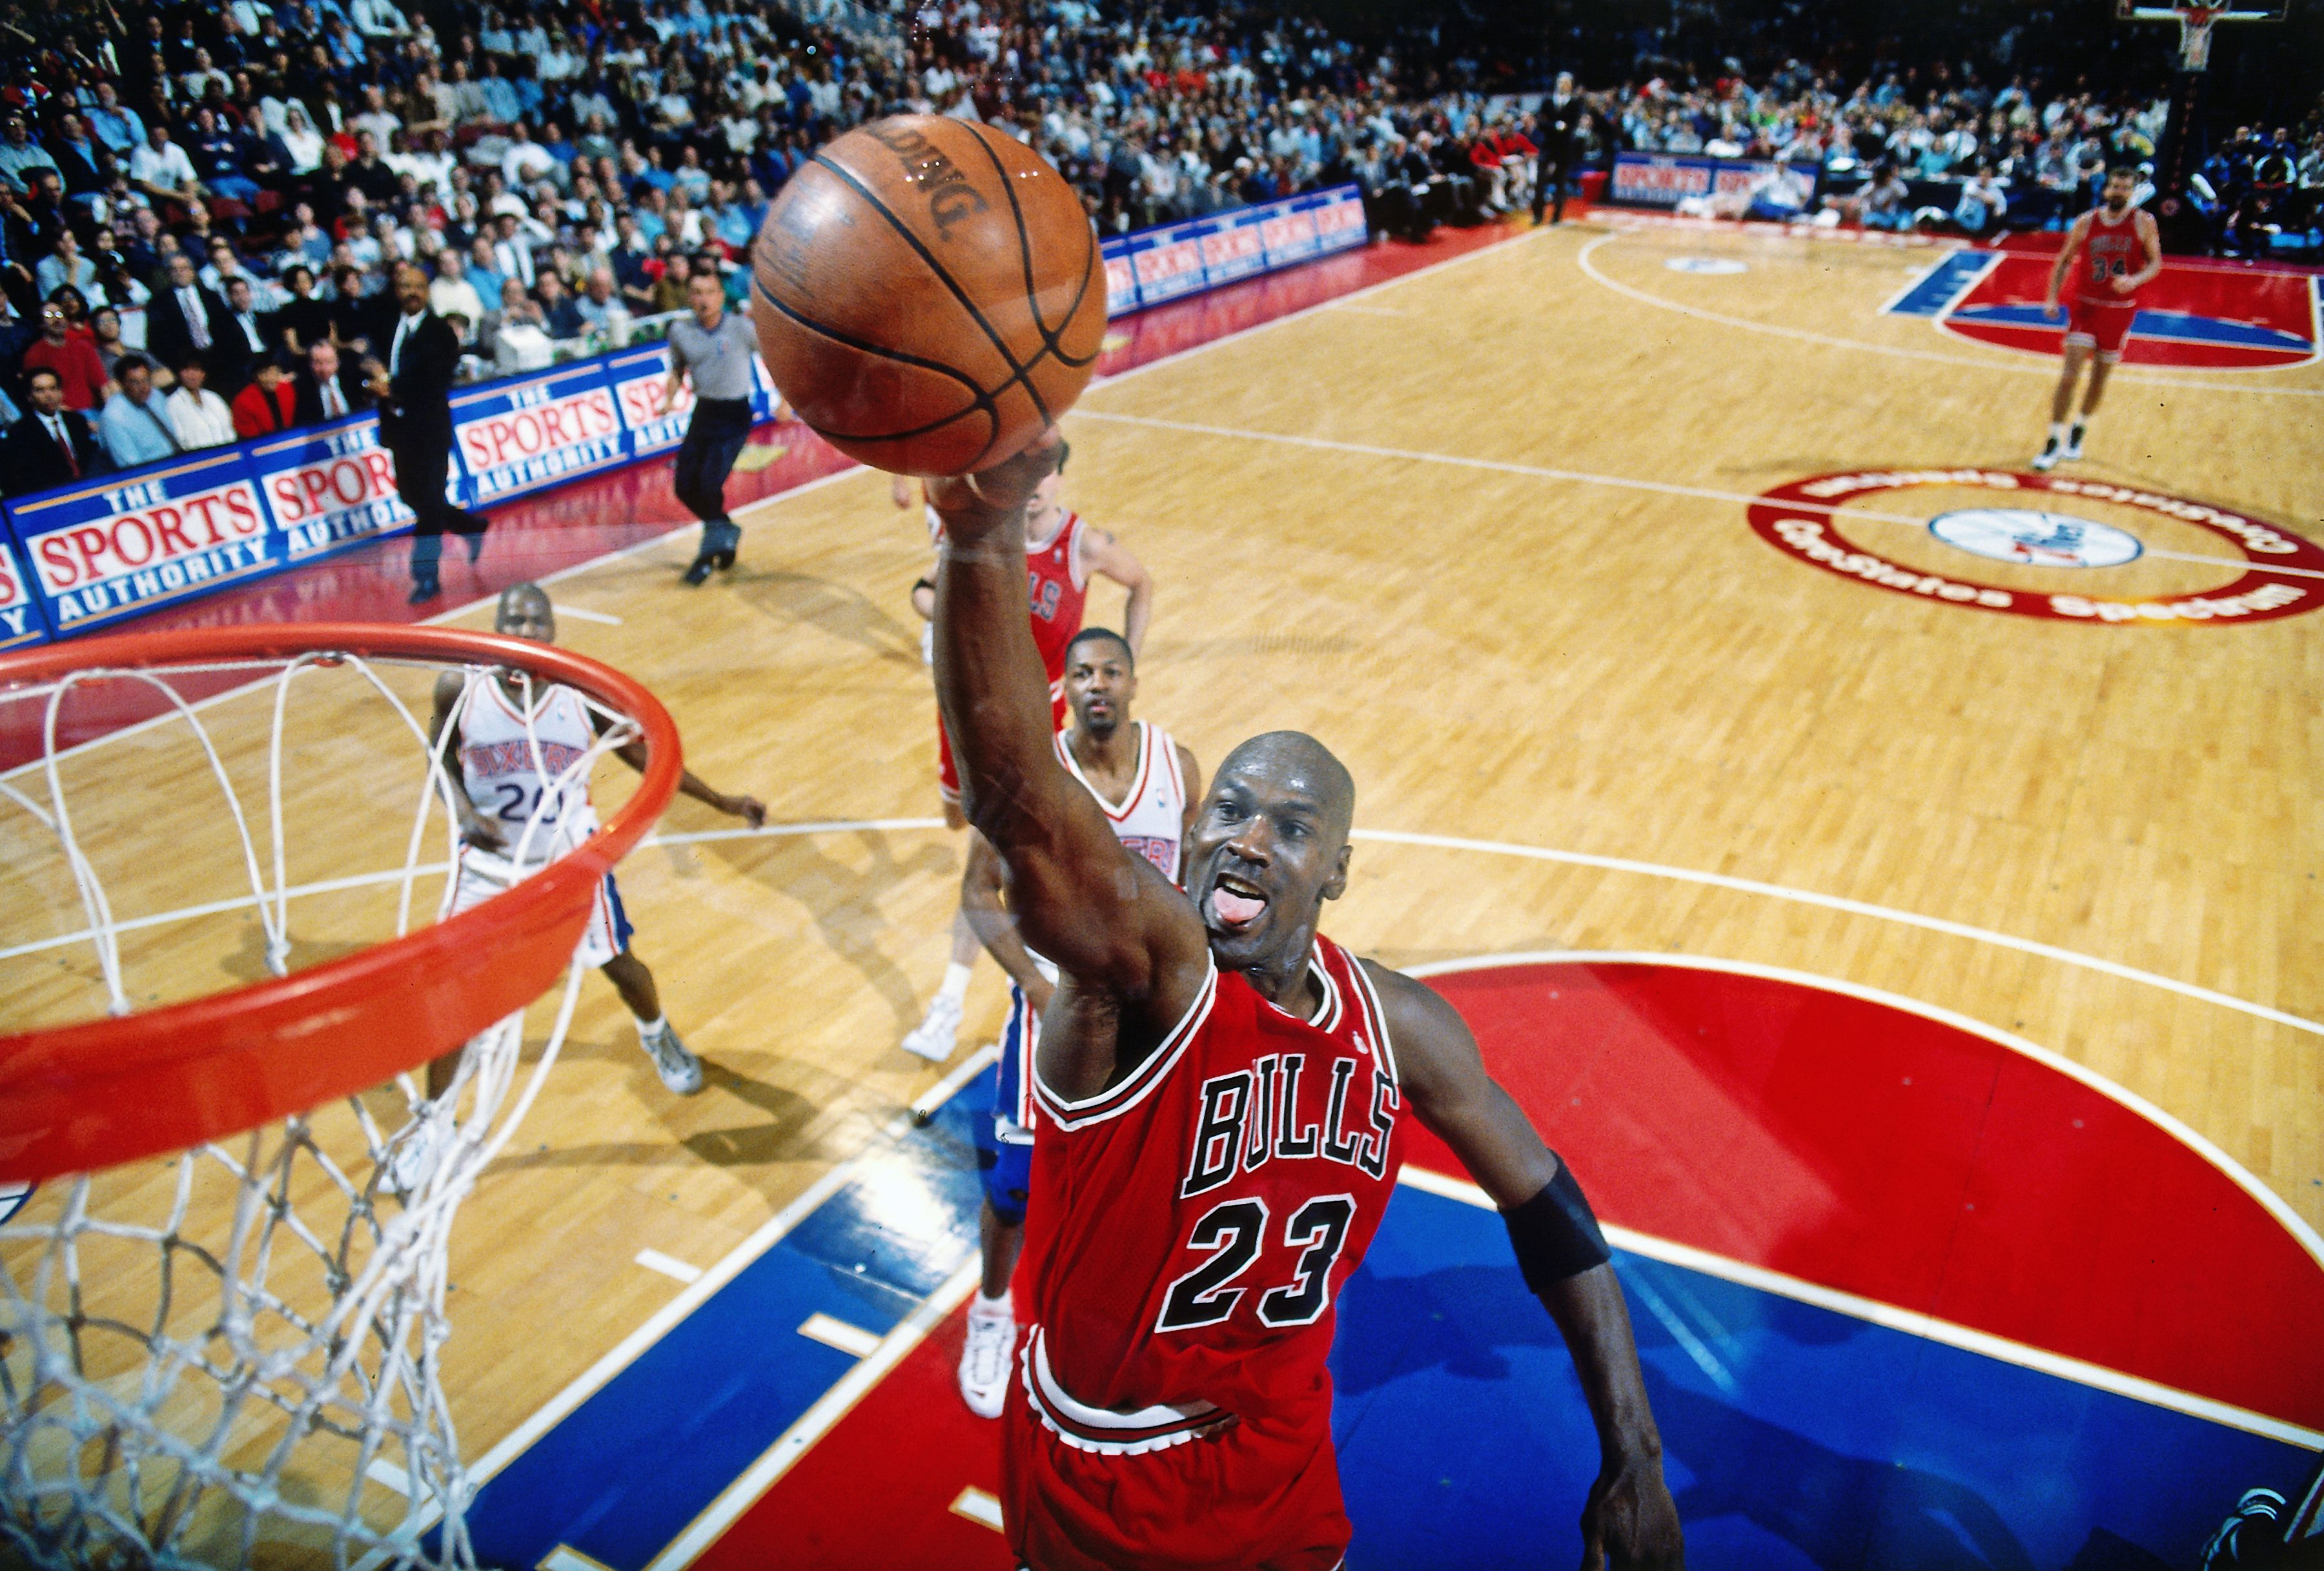 Michael Jordan #23 of the Chicago Bulls plays against the Philadelphia 76ers in 1996 | Source: Getty Images